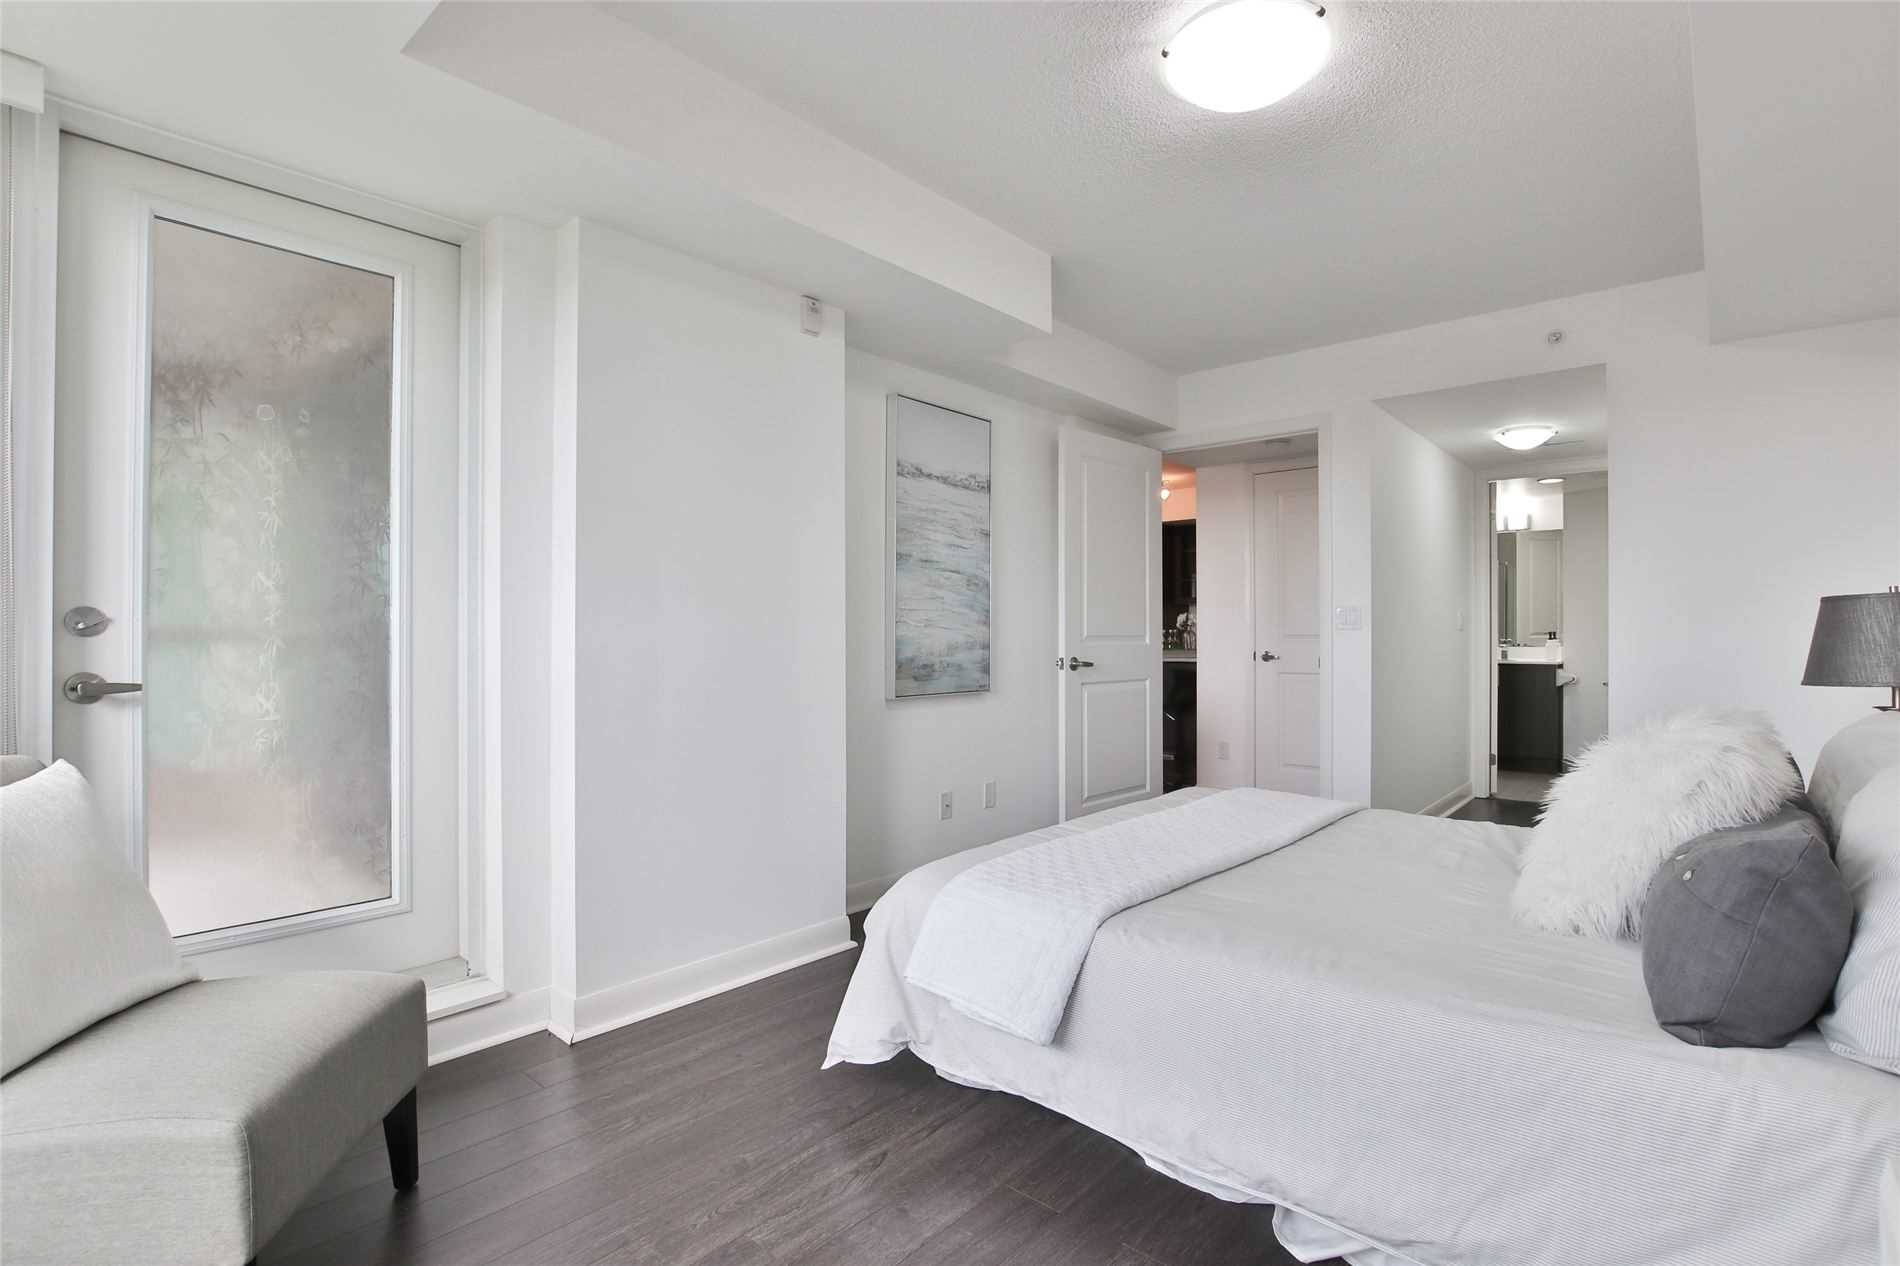 209 - 75 Norman Bethune Ave - Beaver Creek Business Park Condo Apt for sale, 2 Bedrooms (N5305489) - #14